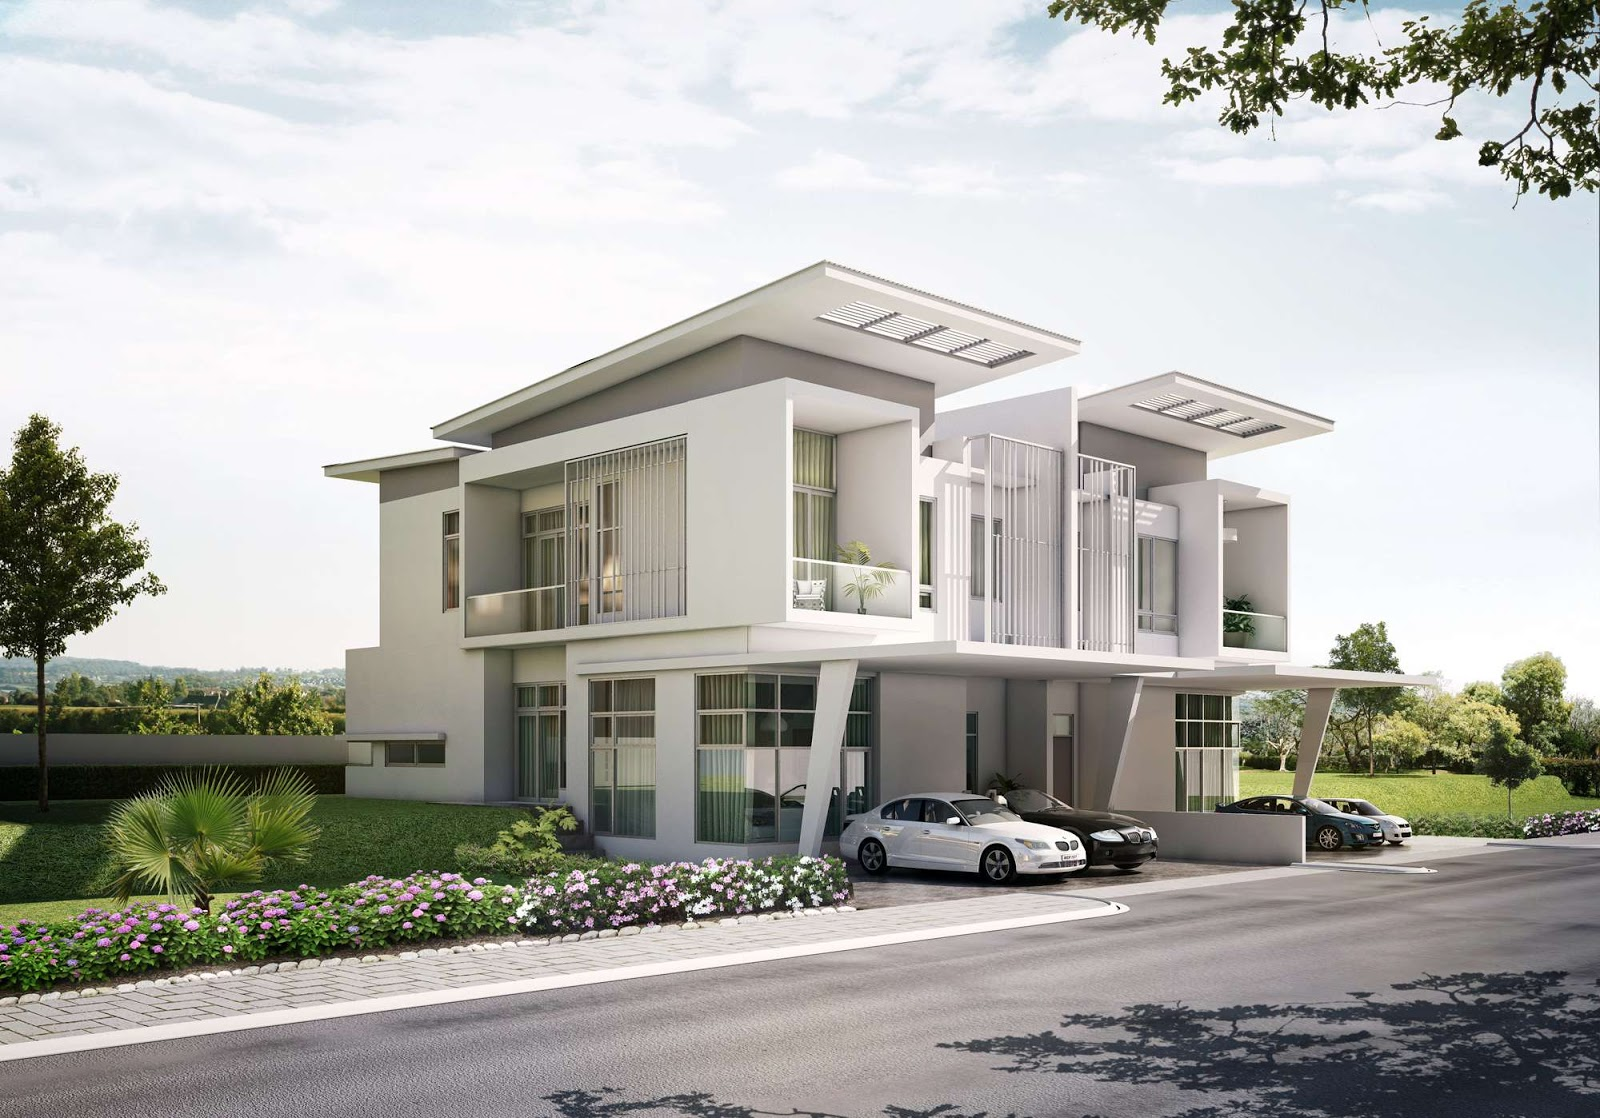 New home designs latest singapore modern homes exterior for Home designs exterior